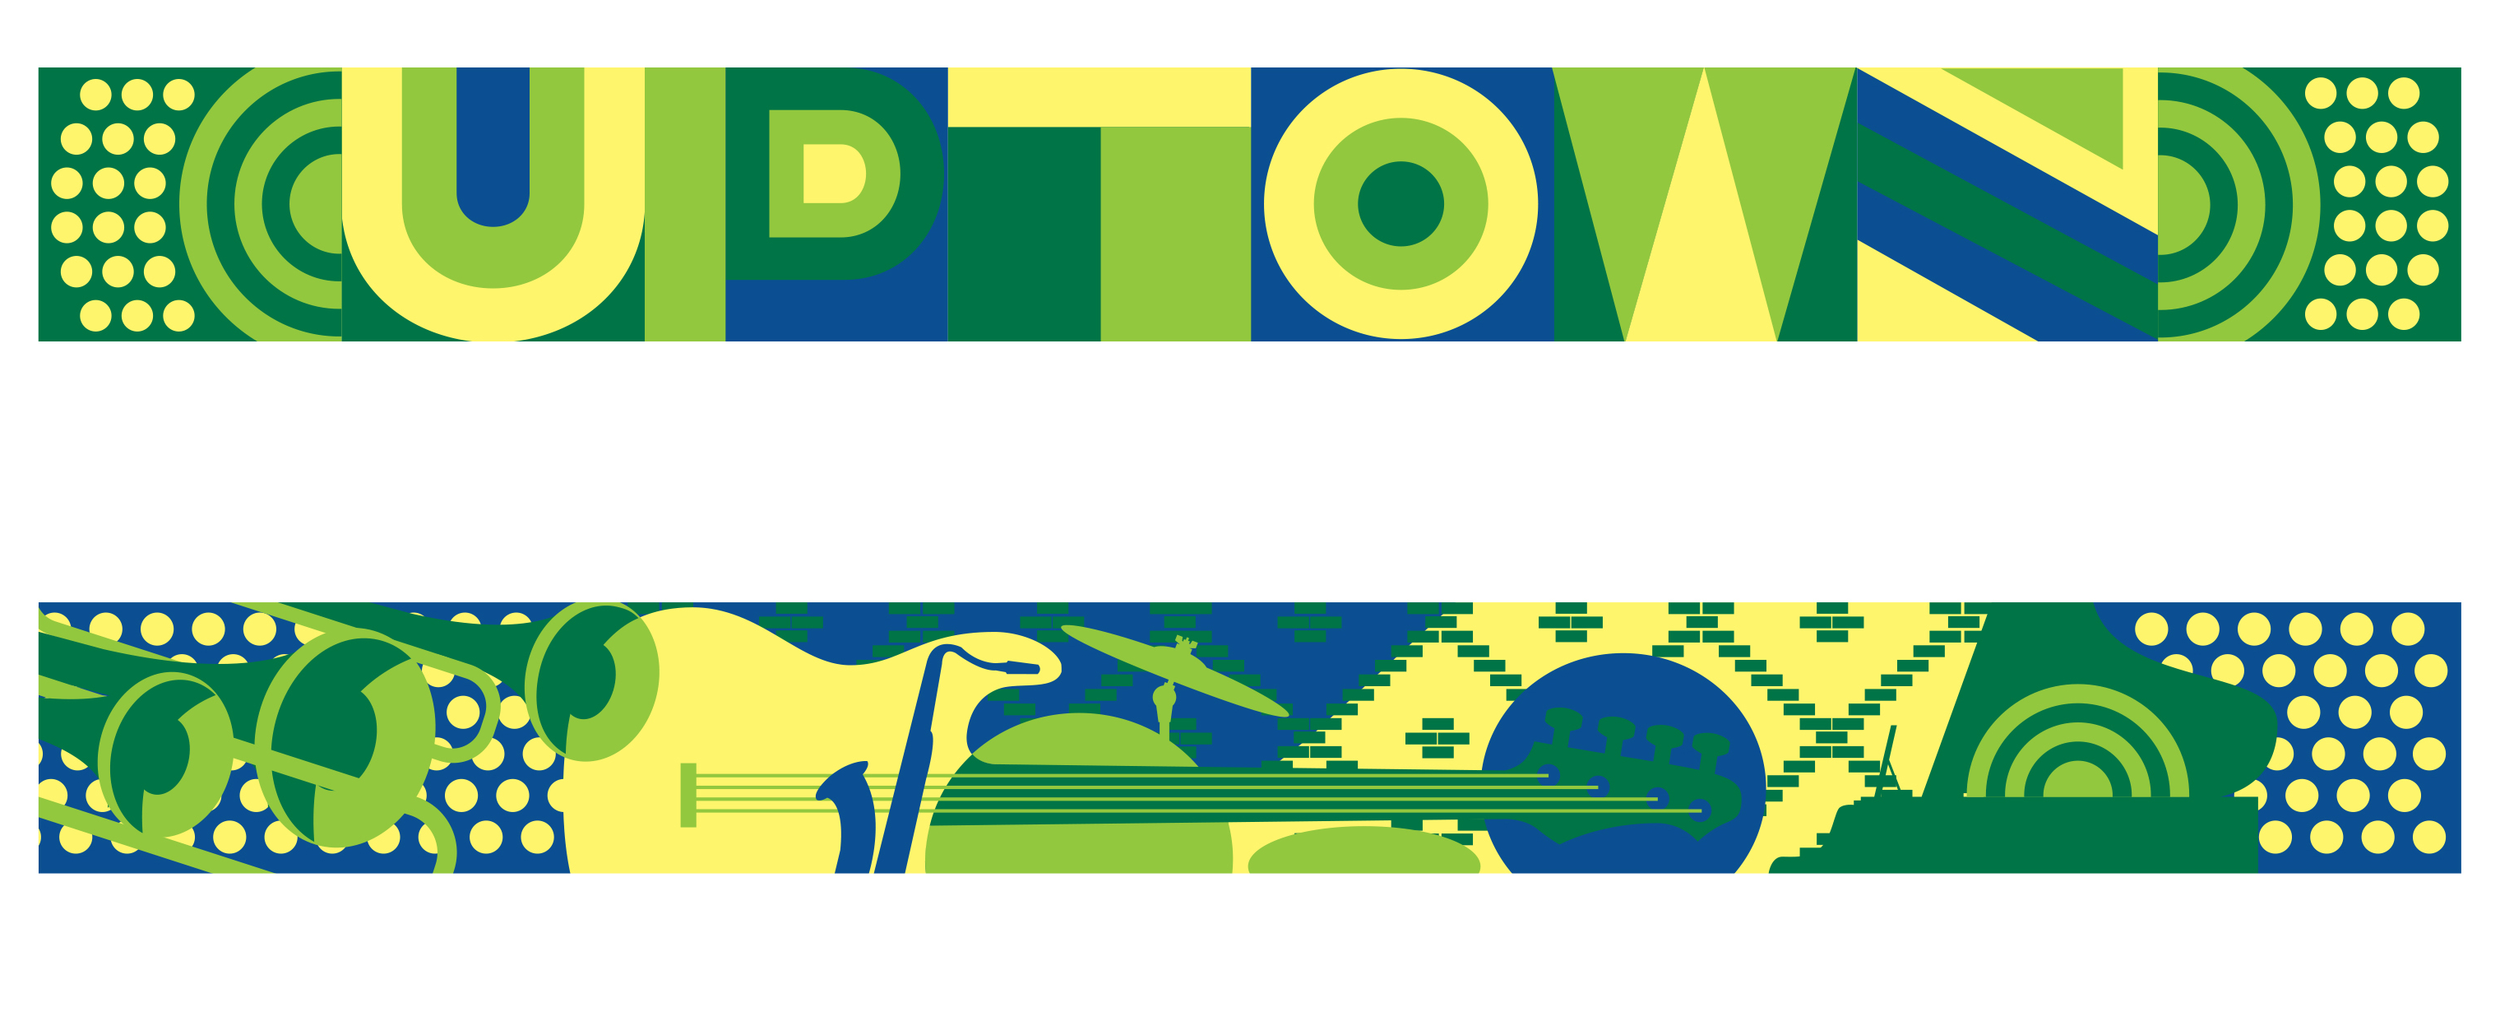 Proposed design for 2 murals for Uptown Chicago